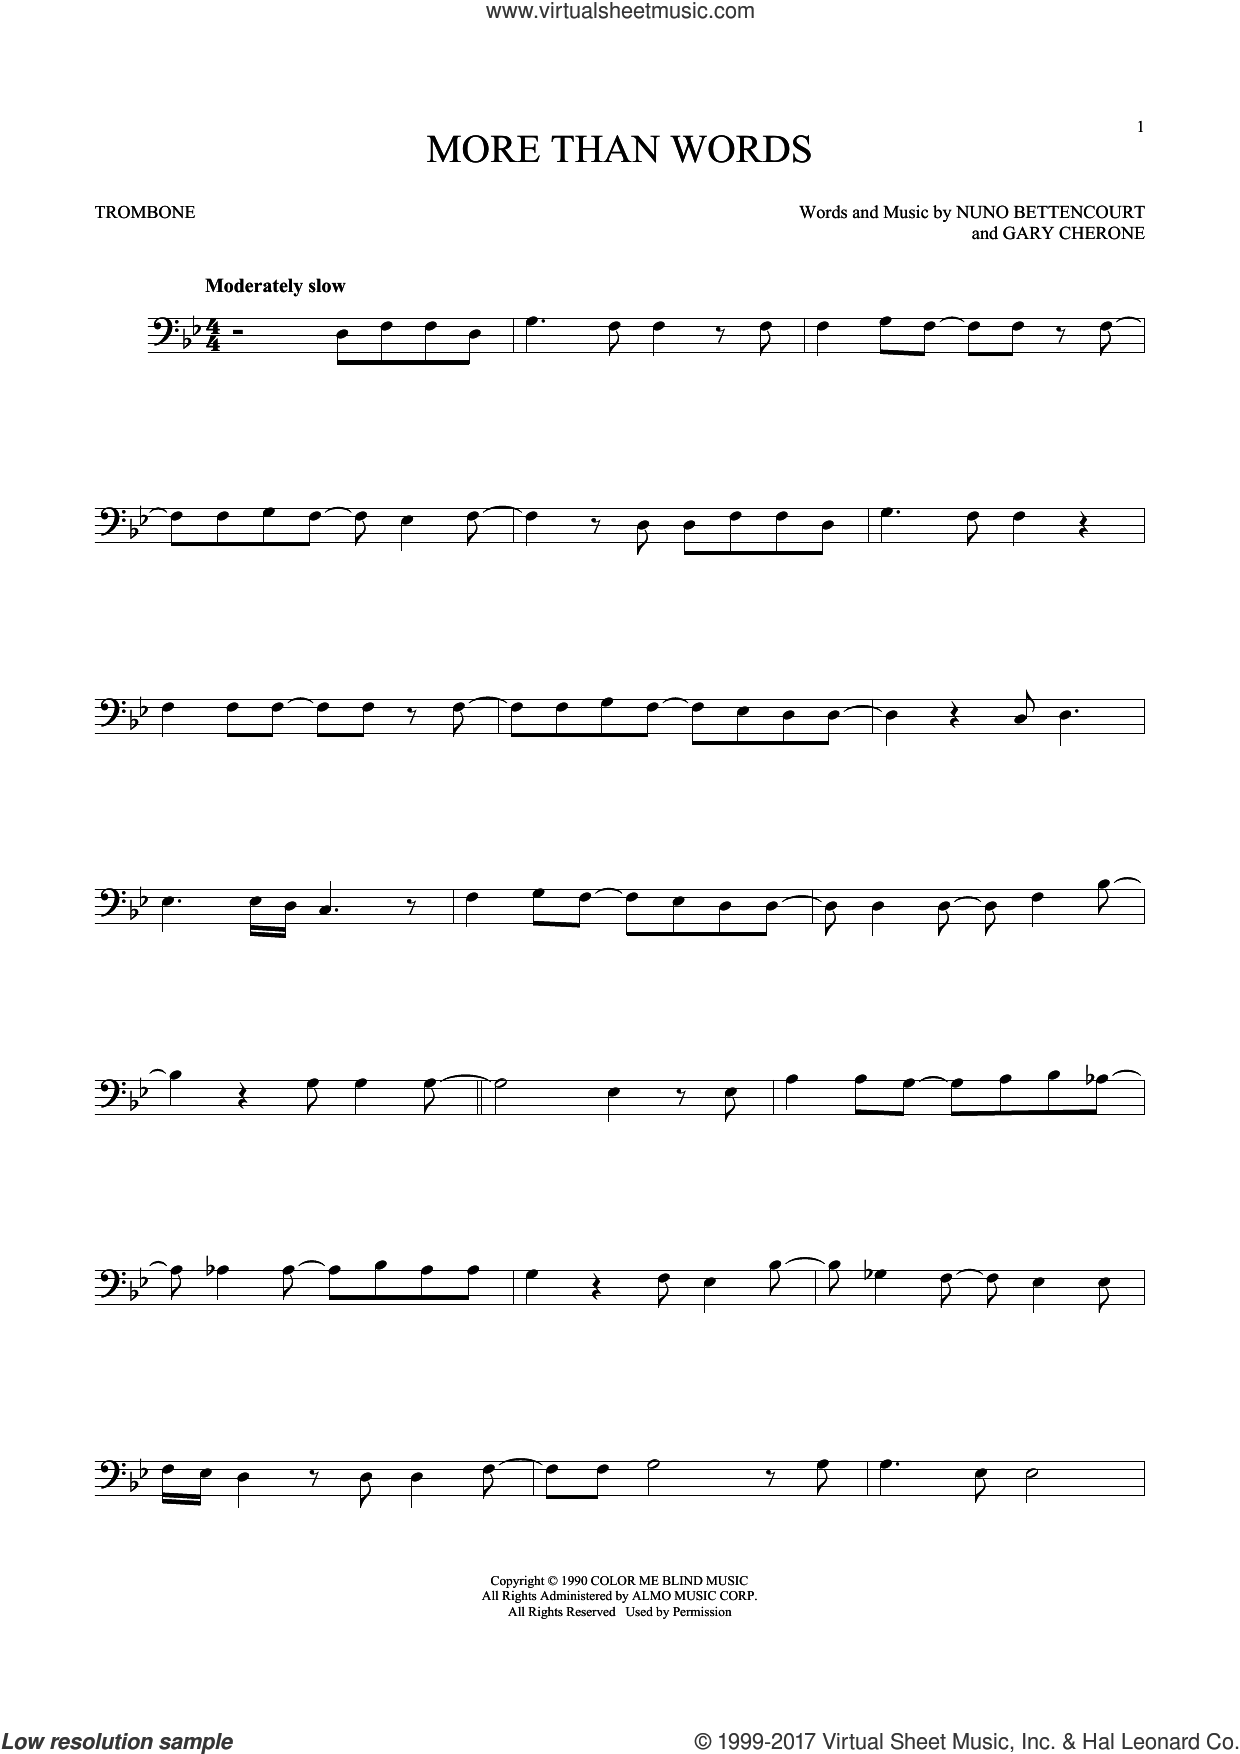 More Than Words sheet music for trombone solo by Extreme, Gary Cherone and Nuno Bettencourt, intermediate skill level